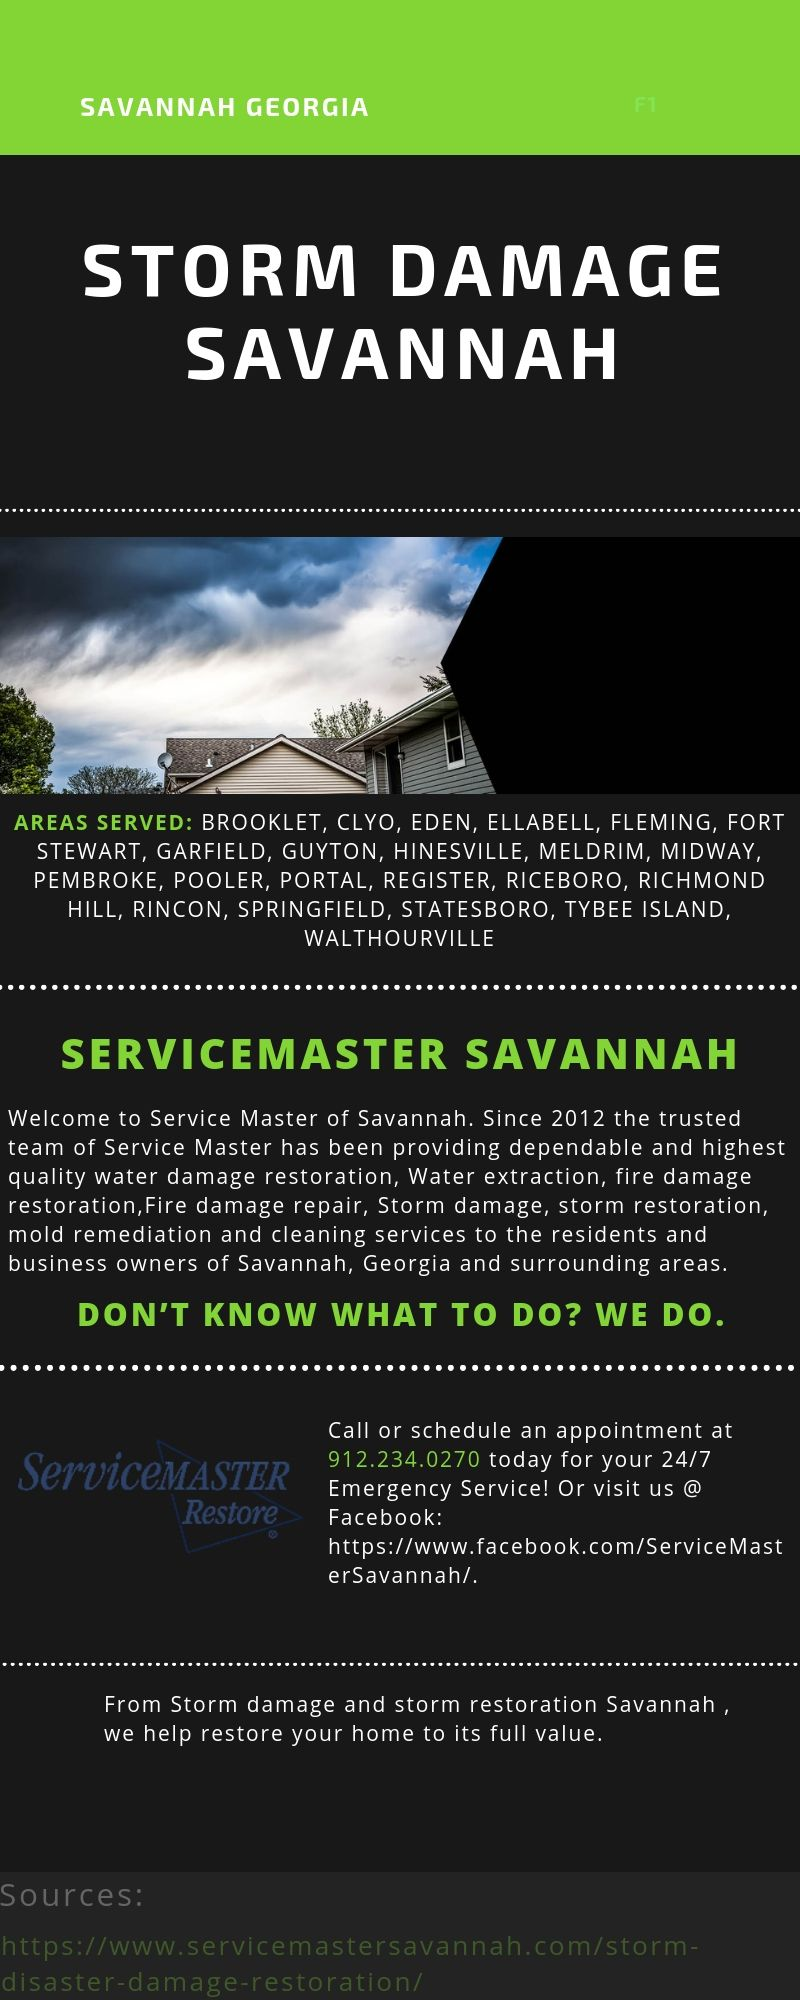 Servicemaster Of Savannah S Leading Storm Damage Restoration